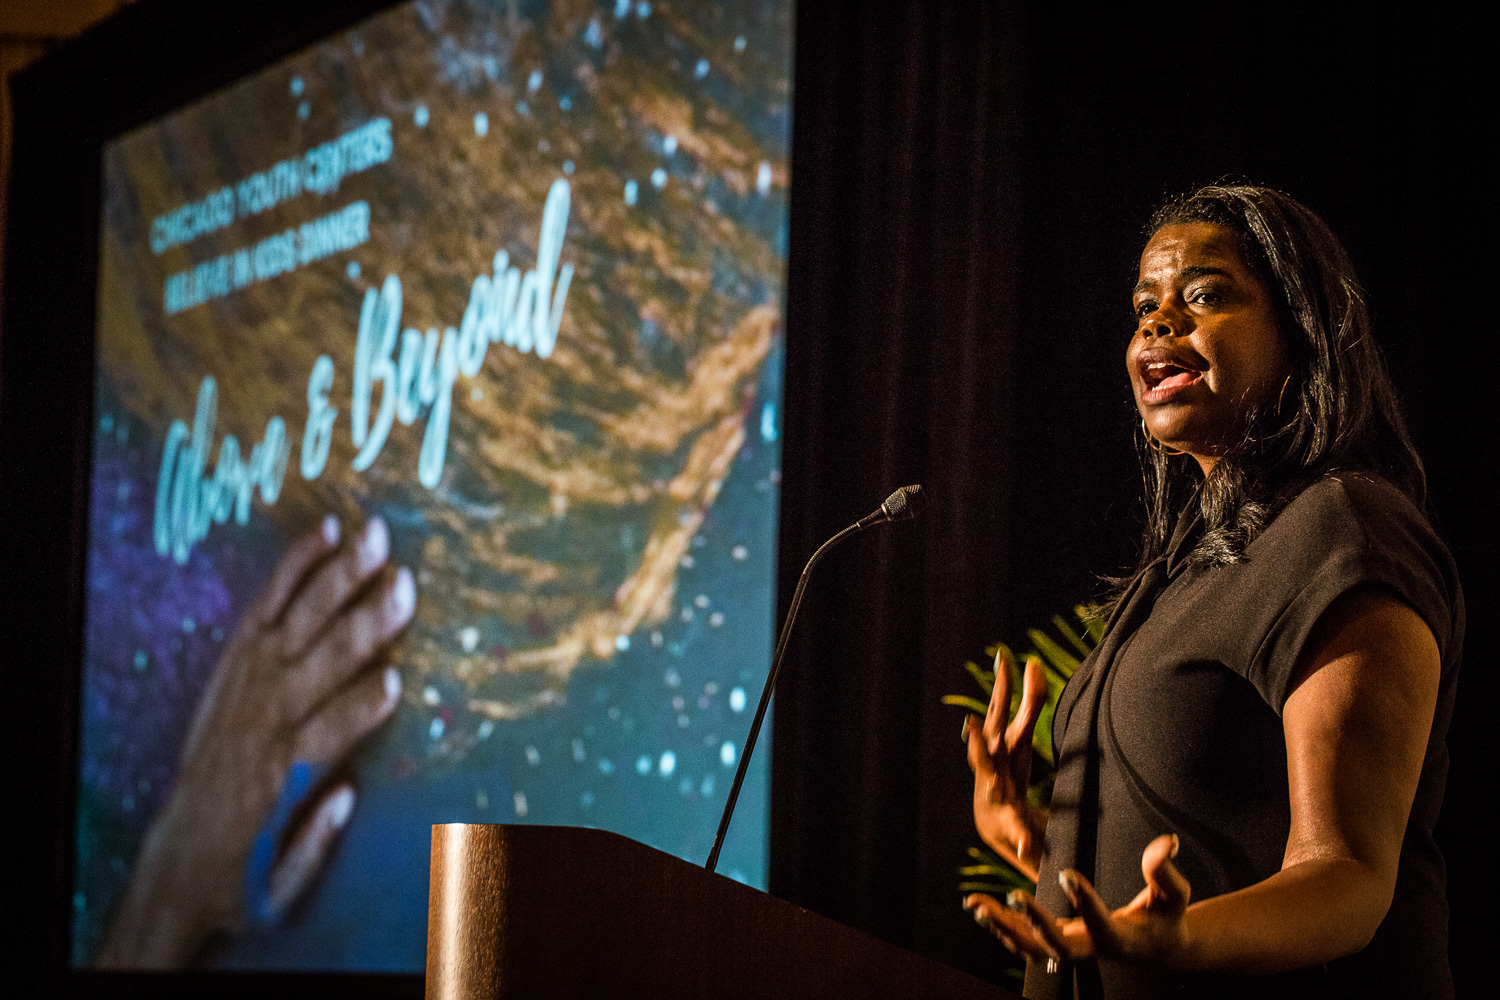 """The Honorable Kim Foxx, Cook County State's Attorney and CYC alumna, gave the keynote speech. She spoke about the people who recognized her potential when she was a child growing up in Cabrini Green. """"I am the product of the family members, teachers, strangers, and organizations who believed in me."""""""